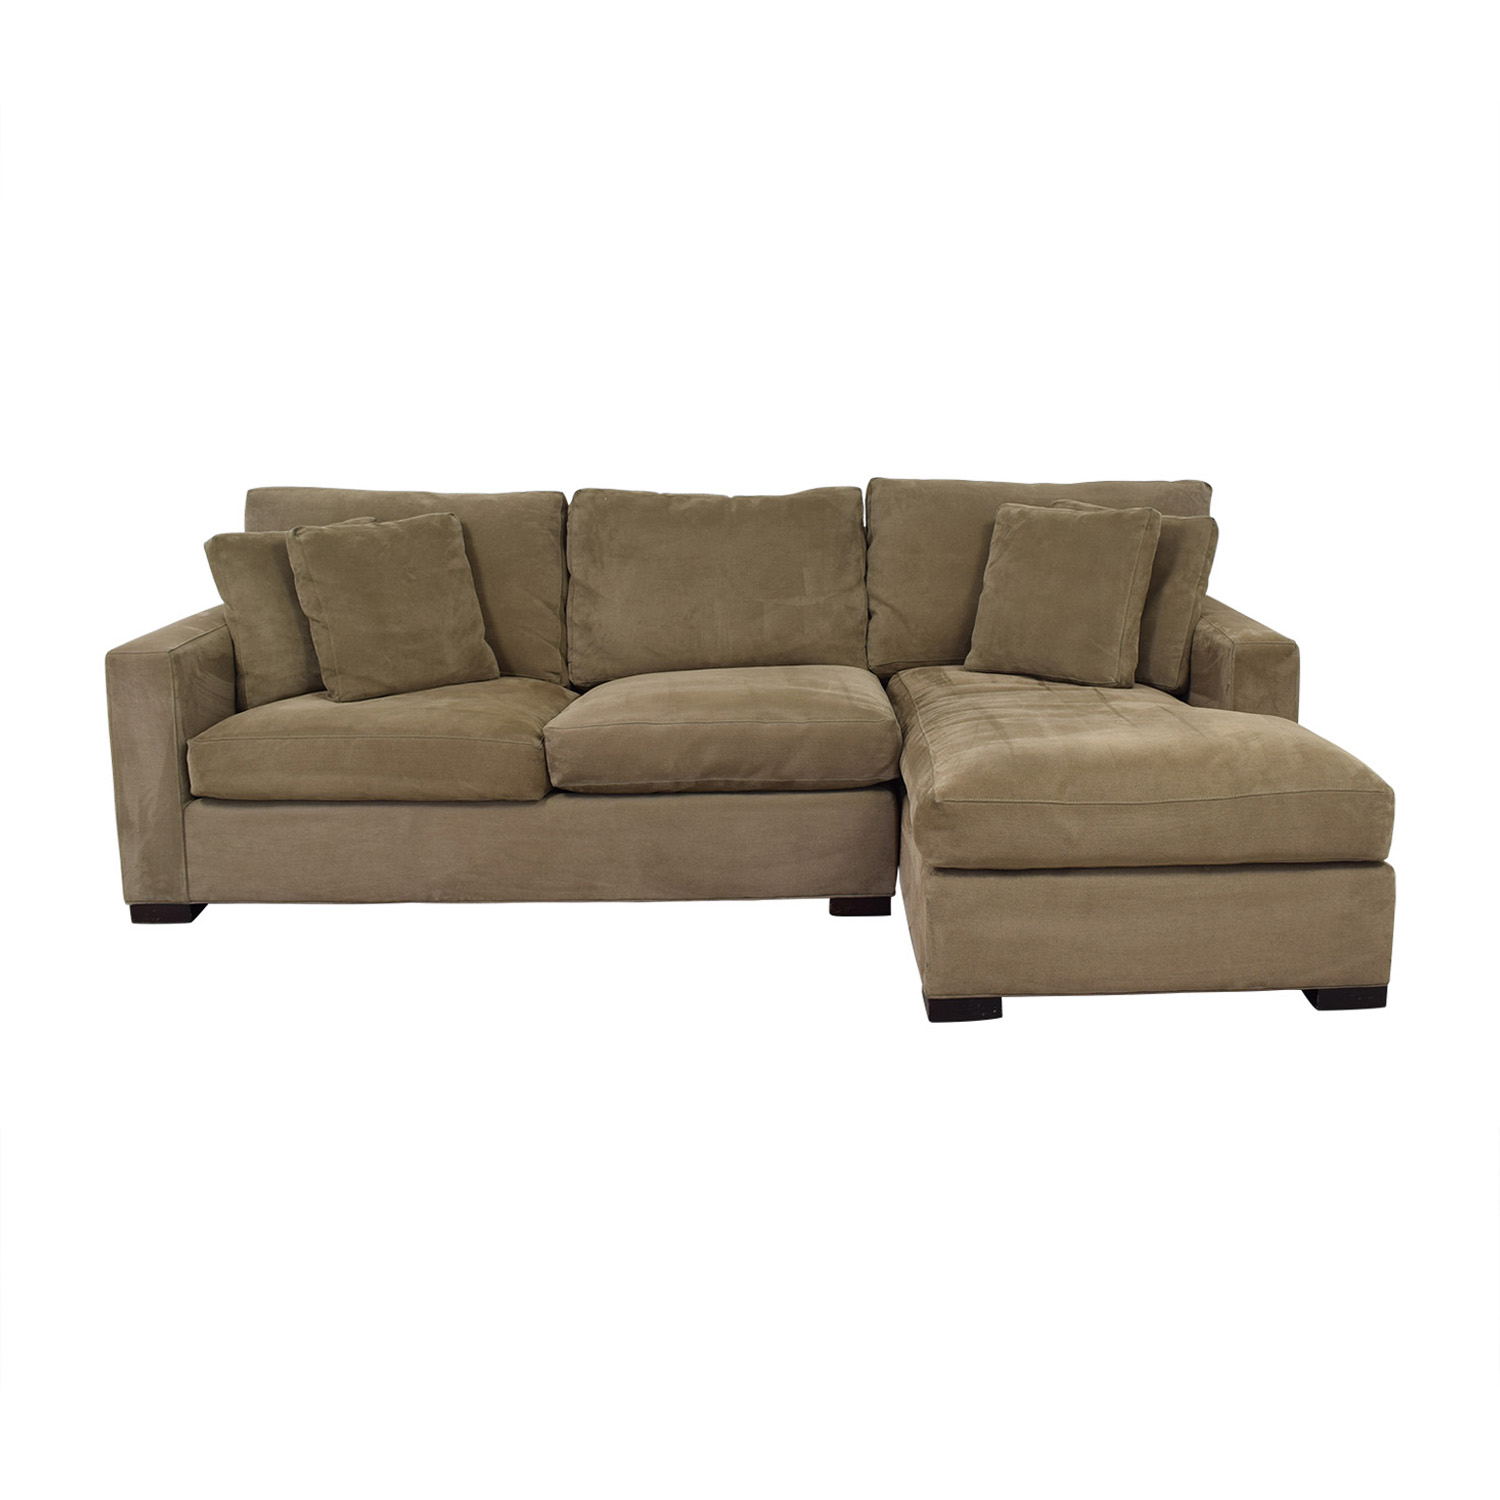 Crate & Barrel Crate & Barrel Axis Green Chaise Sectional green